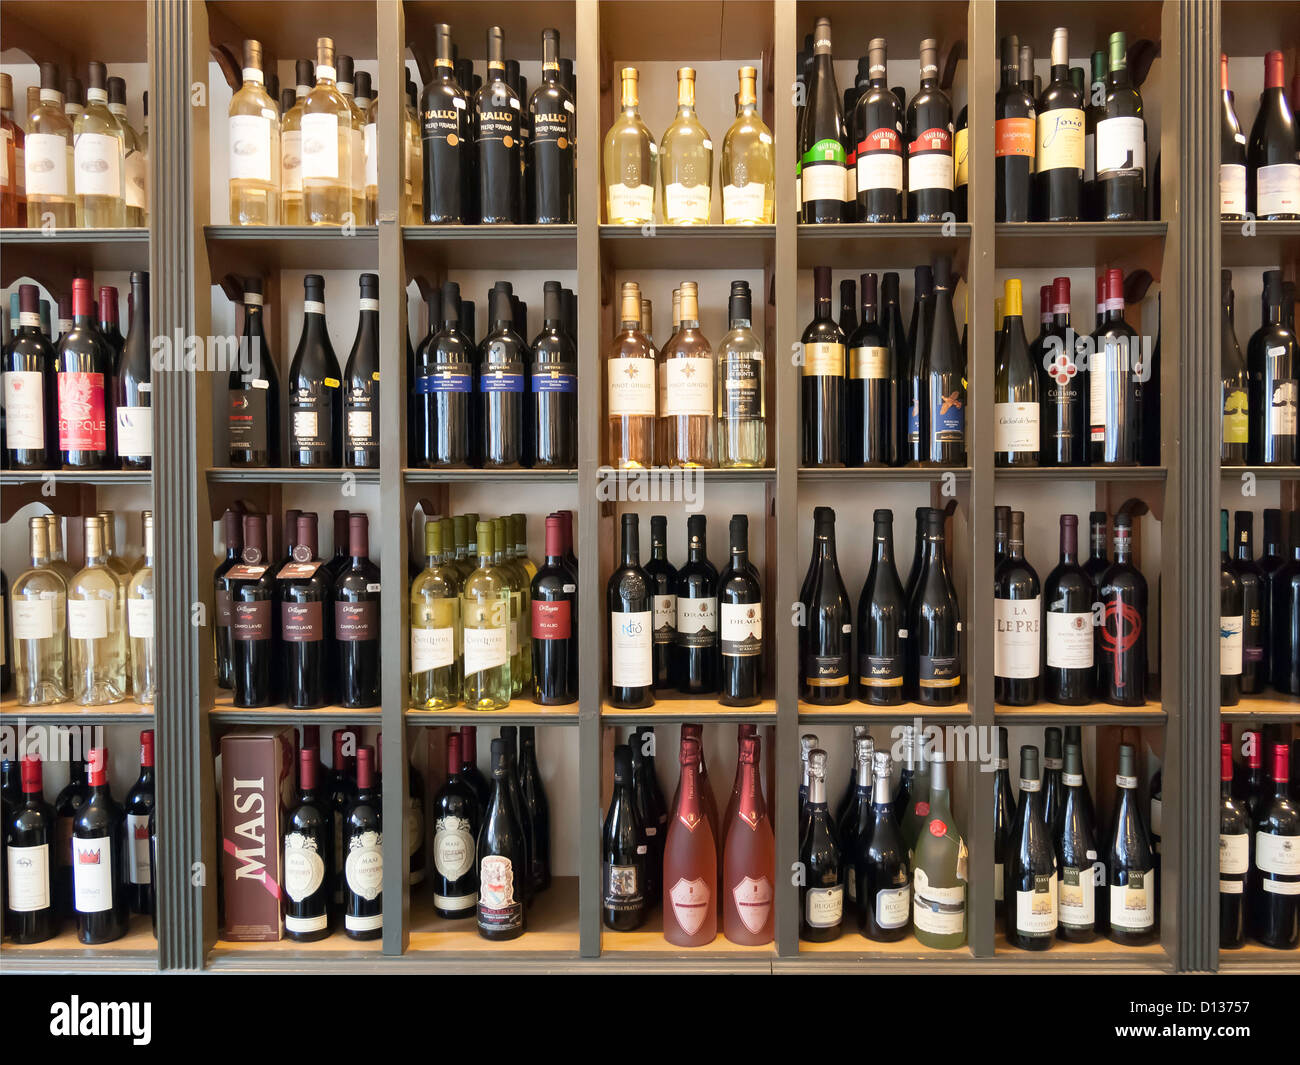 A Wall In An Italian Restaurant Covered With Display Shelves